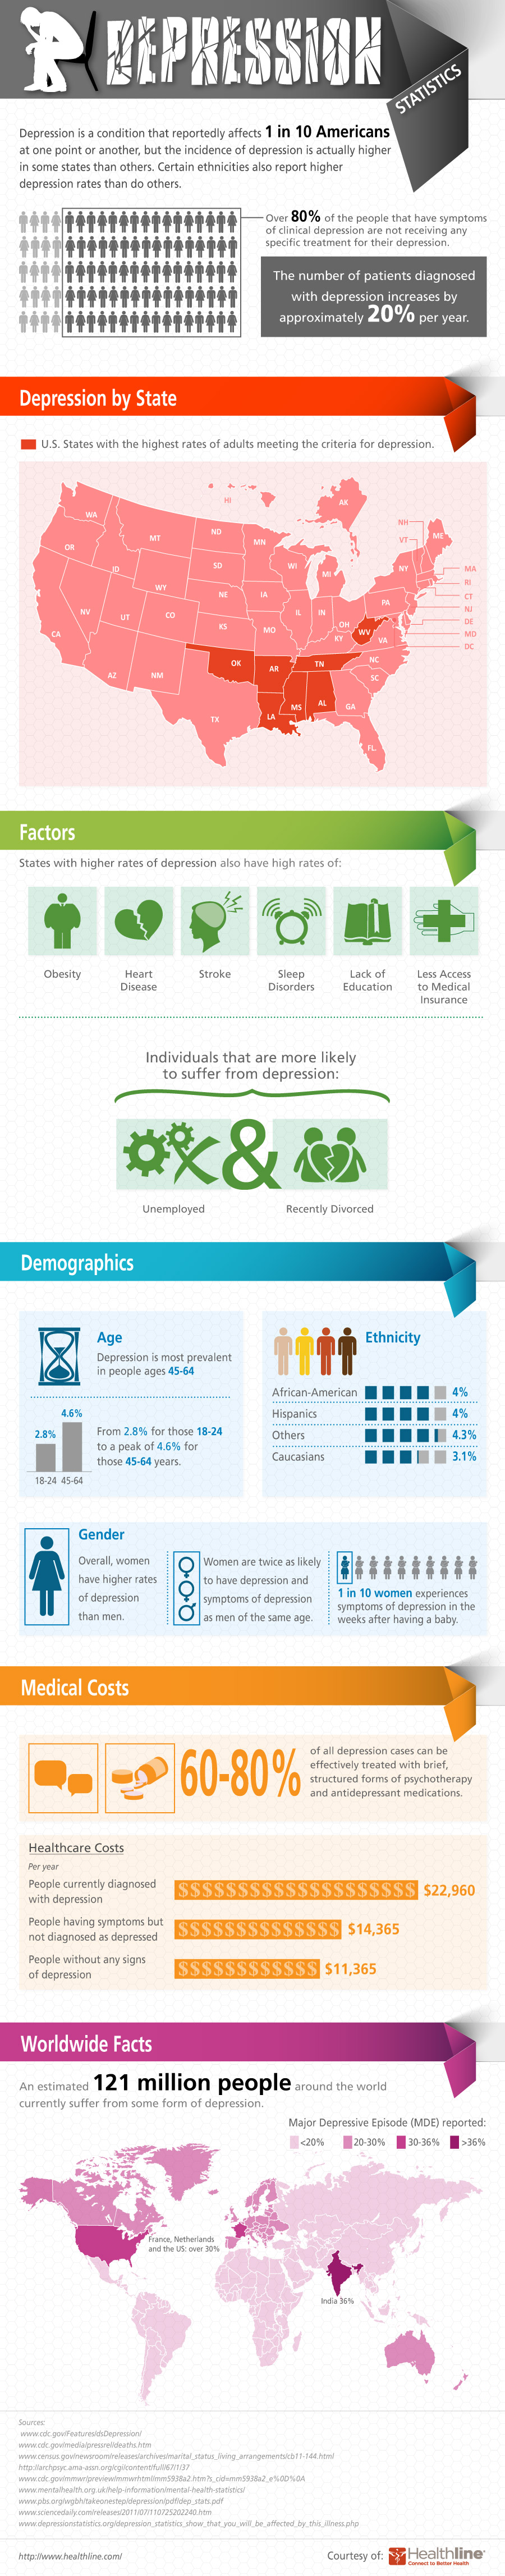 'Unhappiness by the Numbers: 2012 Depression Statistics' (in the U.S., states, gender,ethnicity..)